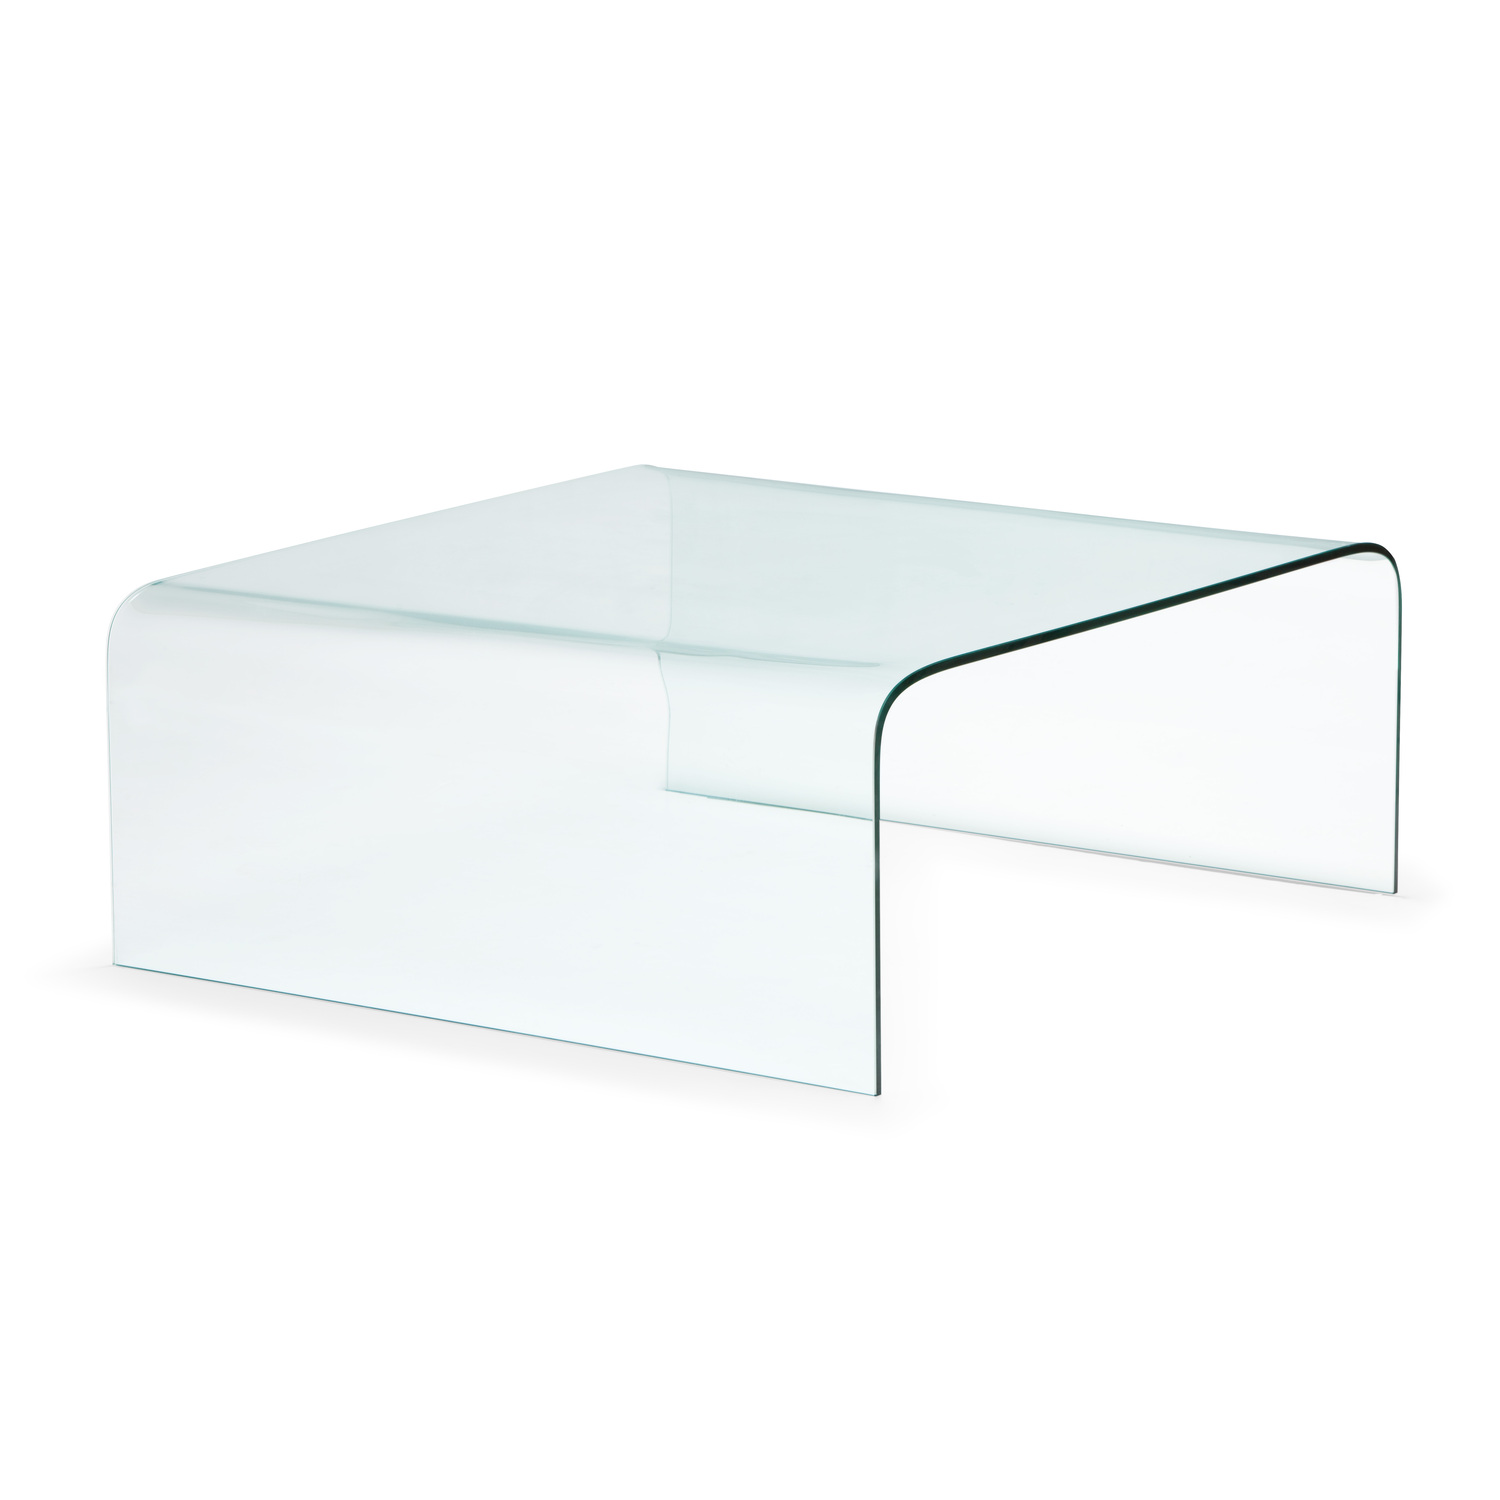 Zuo modern sojourn coffee table tempered glass by oj for Tempered glass coffee table